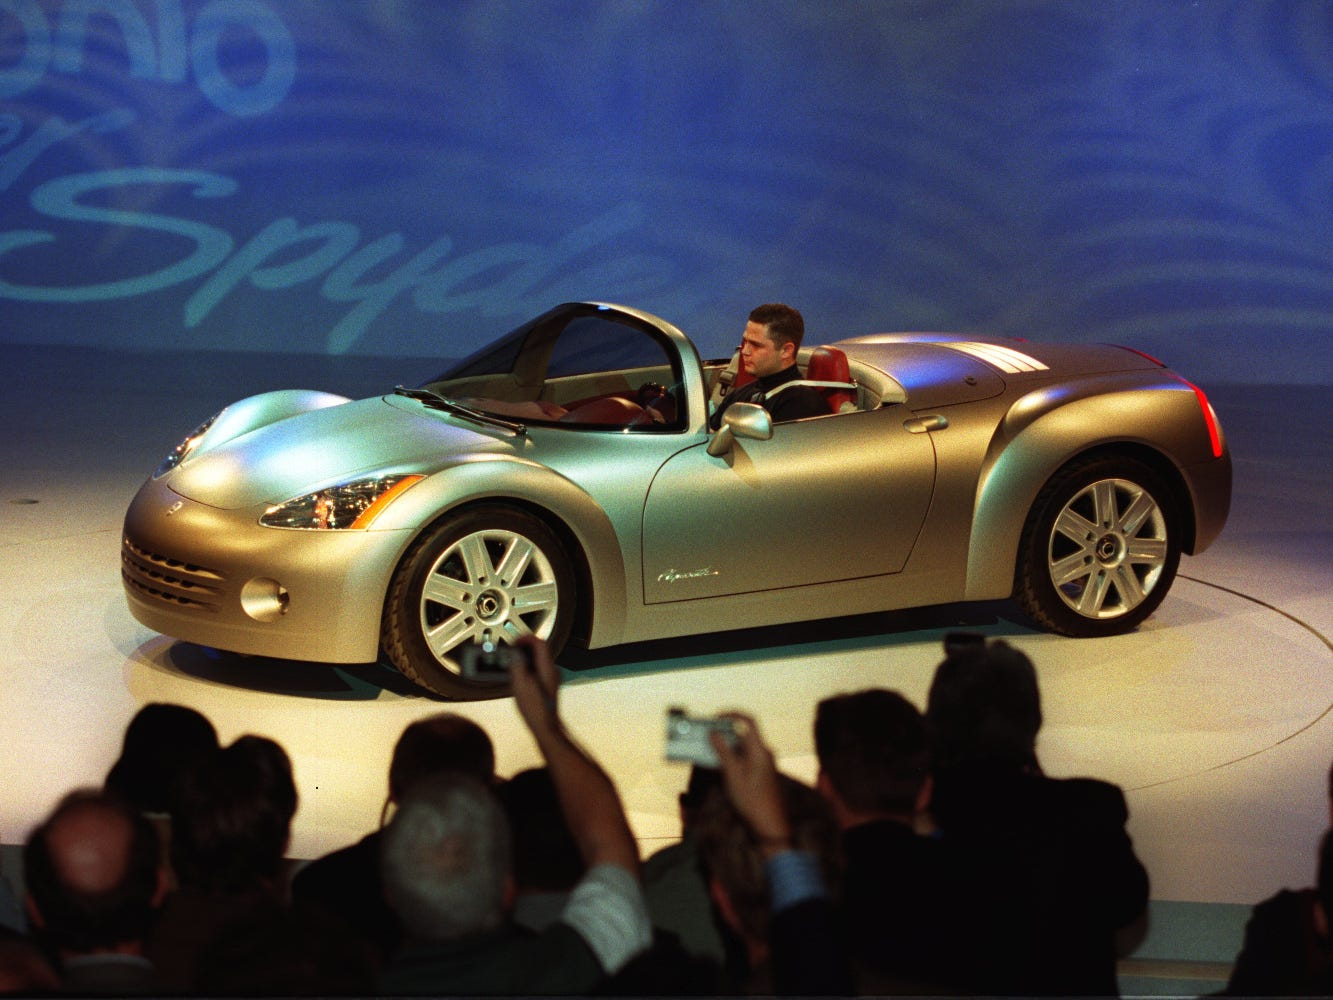 Chrysler unveiled the Spyder concept in 1998 at the Detroit Auto show.